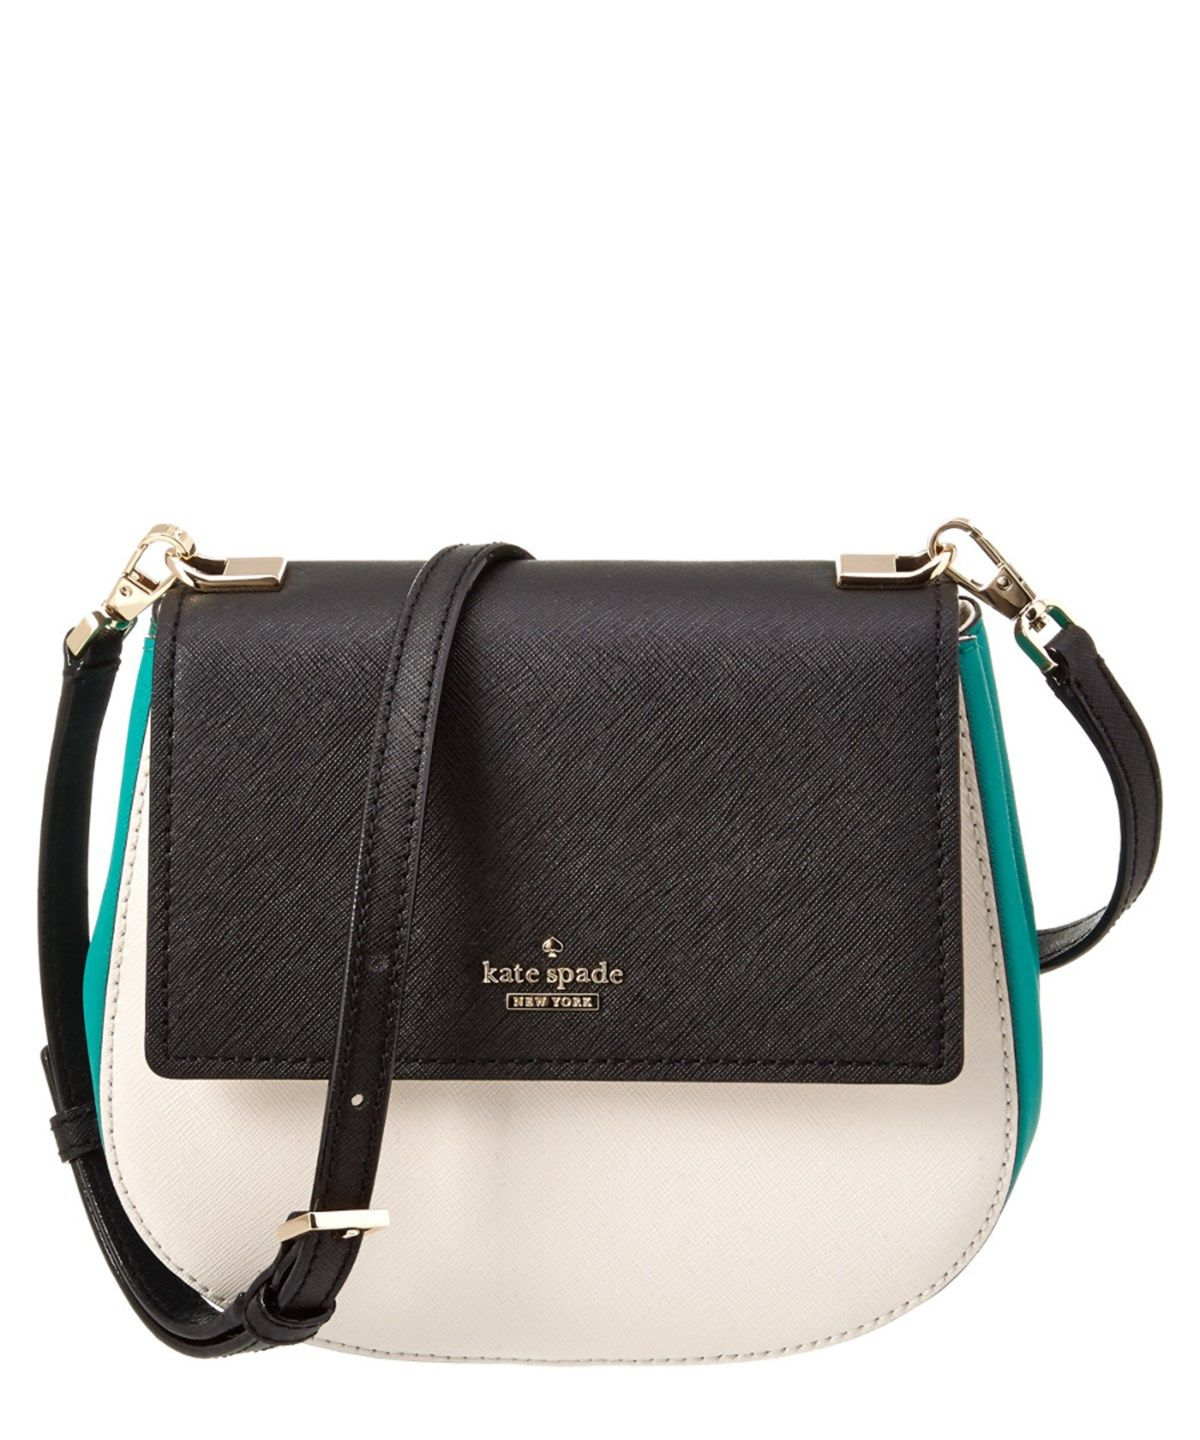 9505e3bbd KATE SPADE Kate Spade New York Cameron Street Small Byrdie Leather  Crossbody'. #katespade #bags #shoulder bags #leather #crossbody #lining #